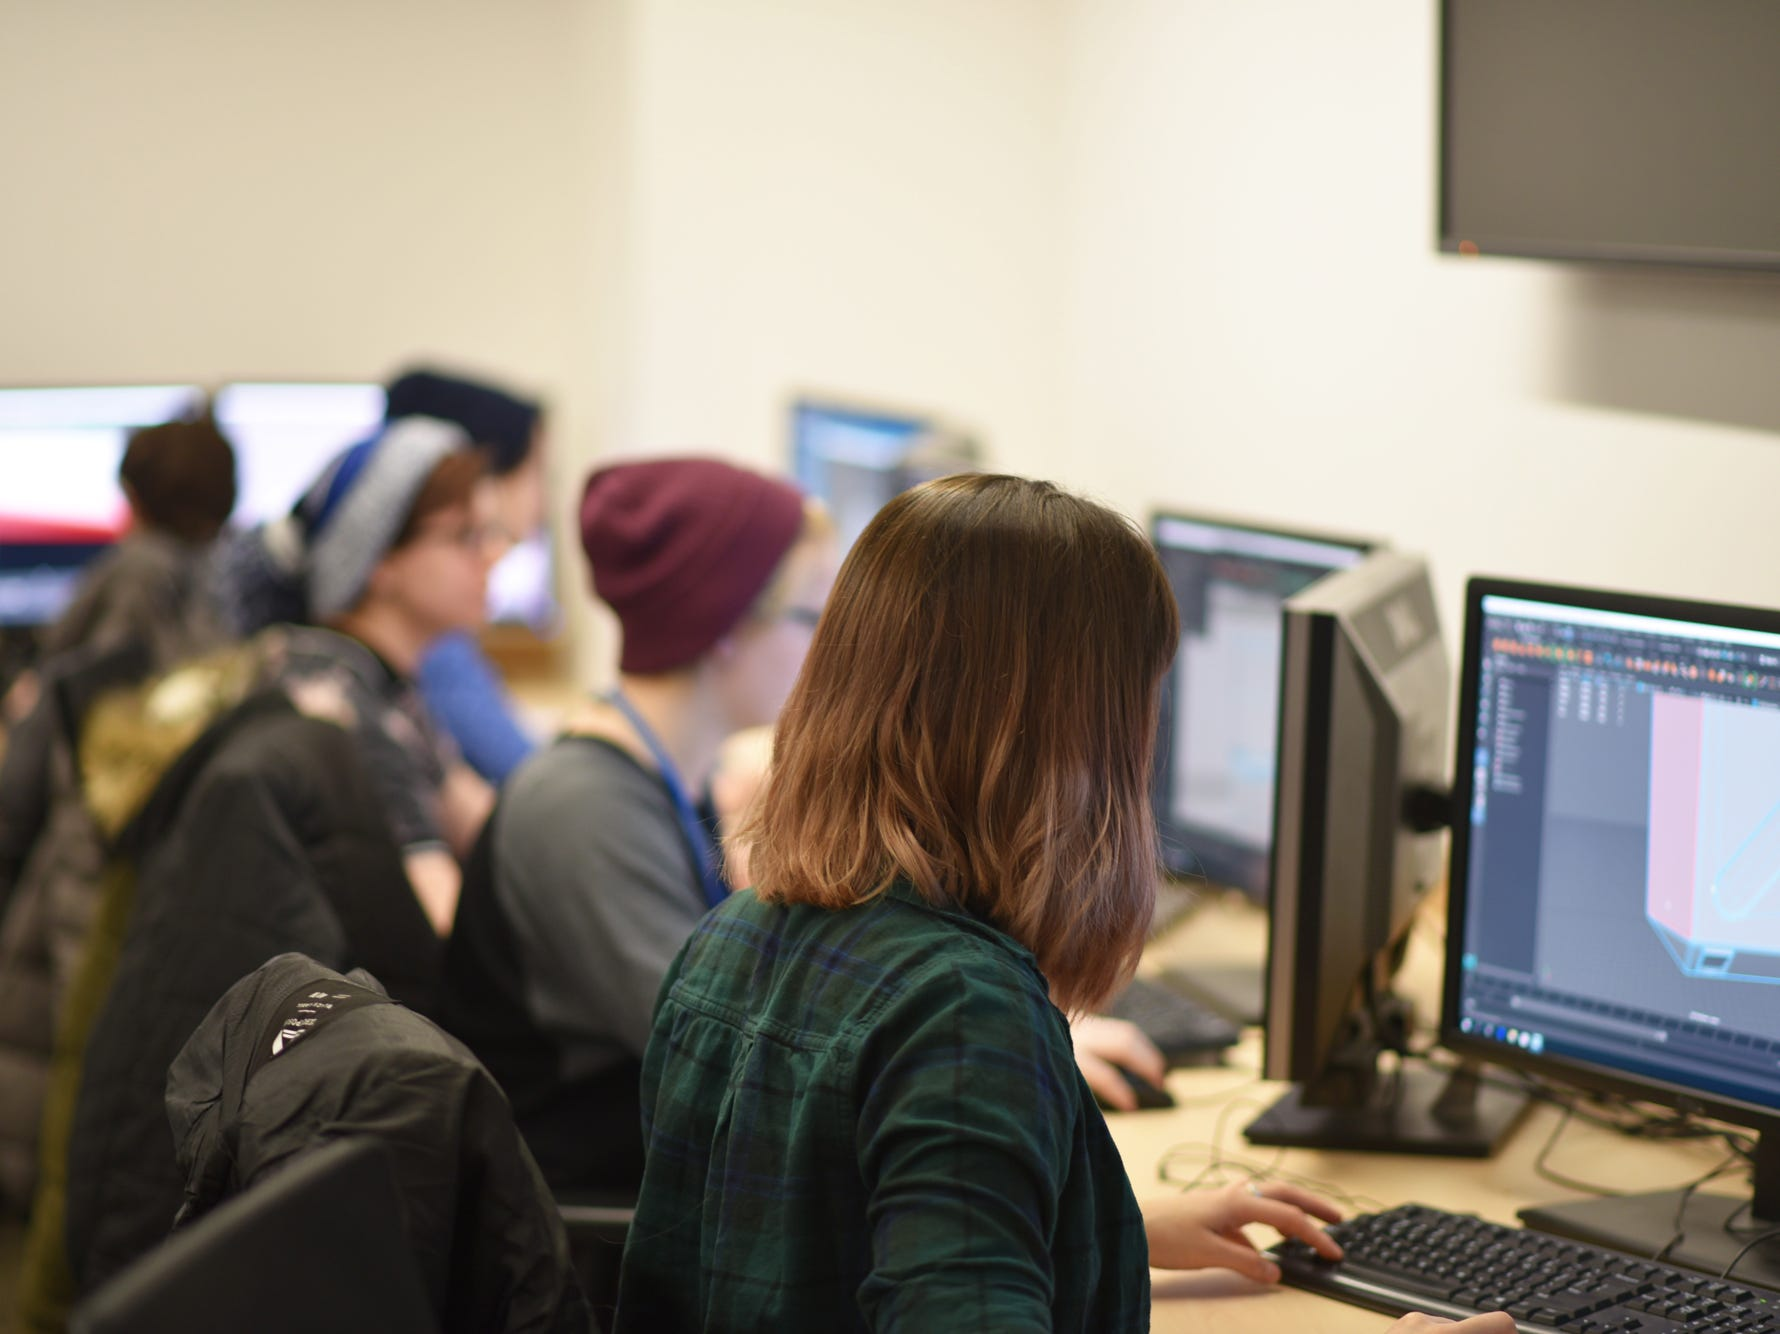 Students at Champlain College sit in one of the Game Design classrooms creating objects in digital space on March 5, 2019. Students said to think of it as carpentry or even set building within a computer program. First you have to create objects, then you put them together to build an environment. Then comes light and texture and color.